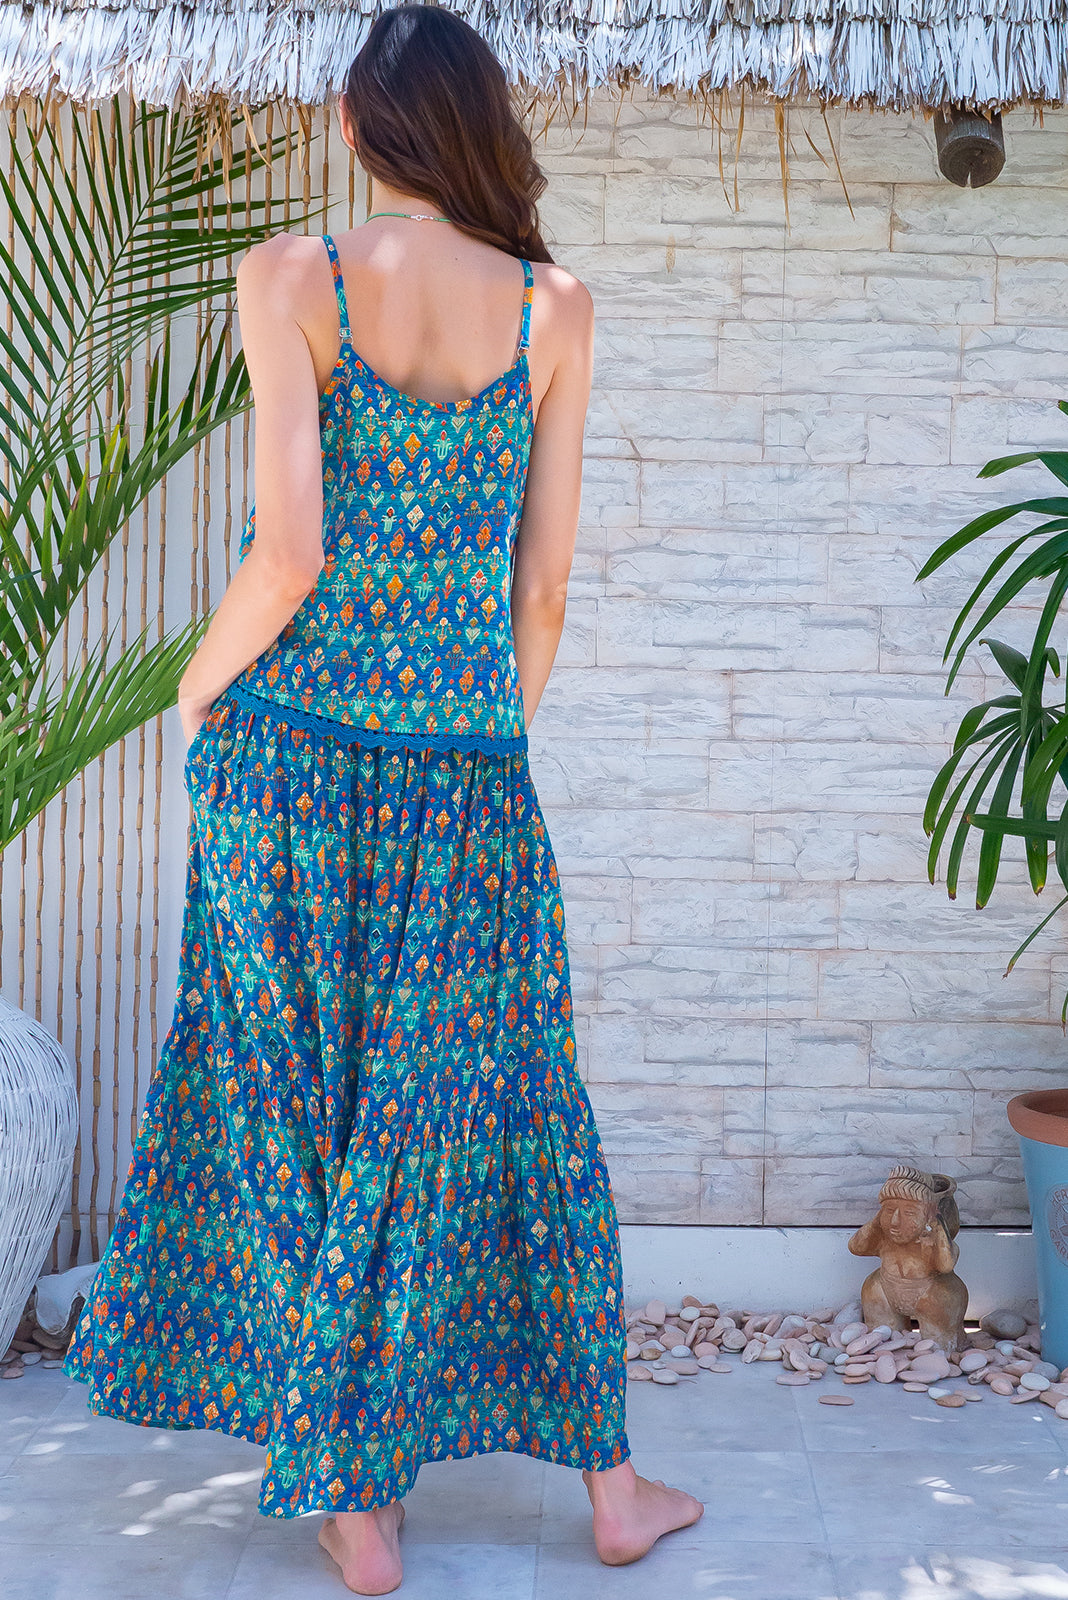 The Valencia Turquoise Aztec Maxi Skirt is made for you, featuring elasticated waistband with adjustable drawstring, tiered for fullness, side pockets and cotton/ viscose blend in blue/green aztec print.